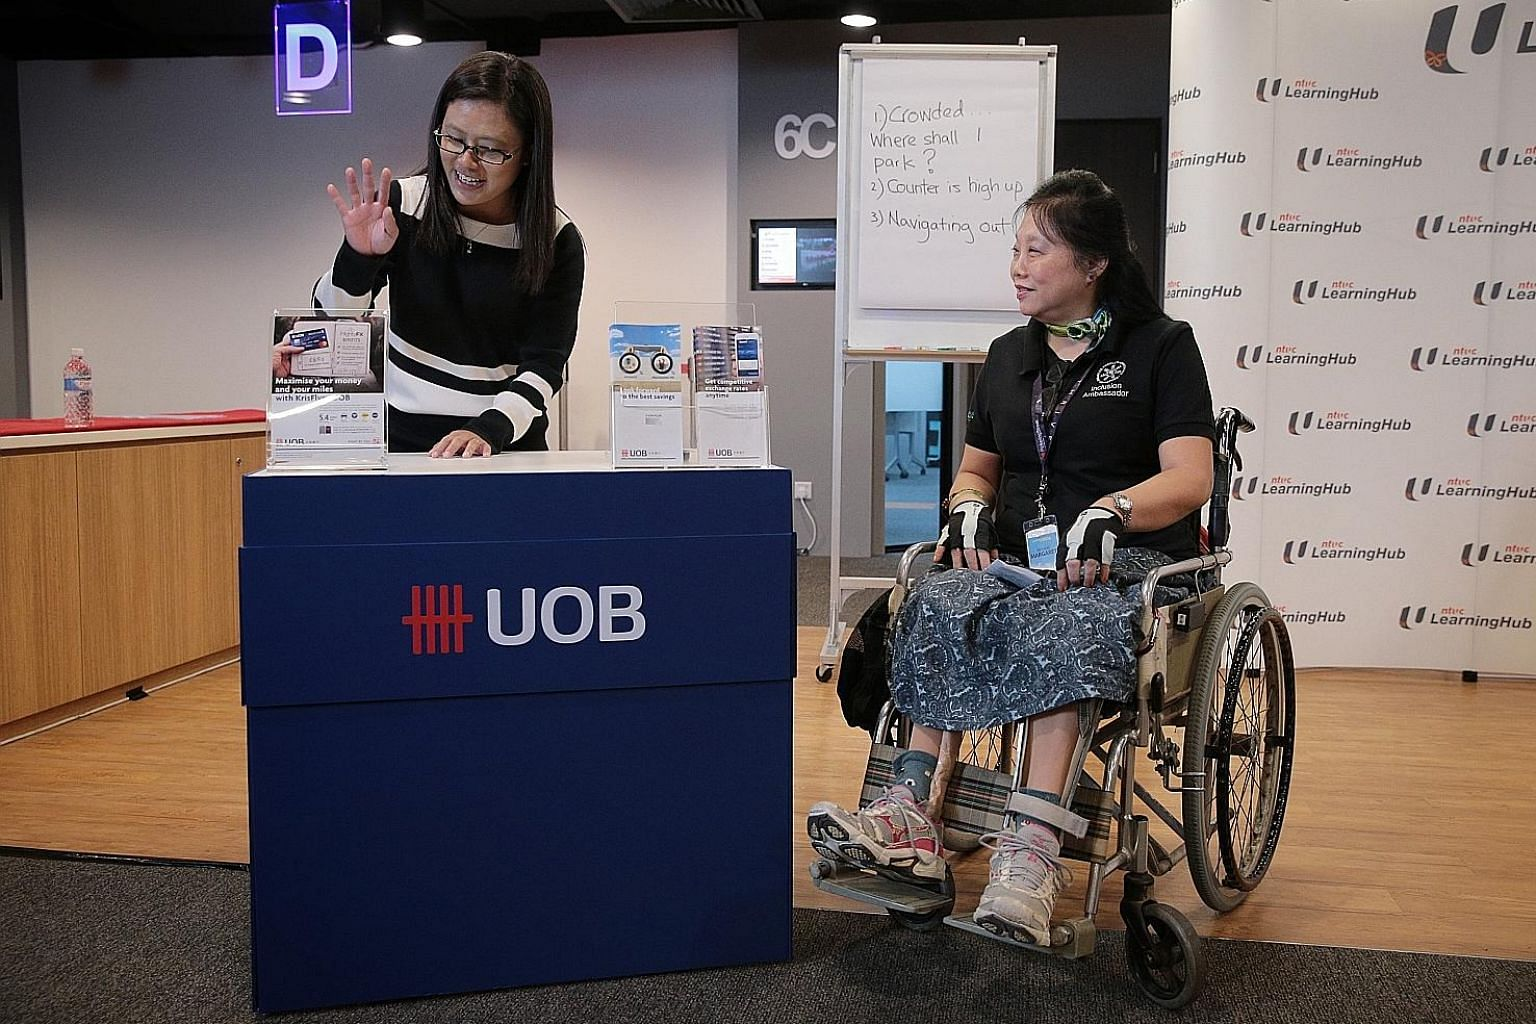 Deputy branch manager Heng Siew Pheng of UOB's Tampines branch and Disabled People's Association ambassador Margaret See at the Service Inclusiveness Programme's media launch event.